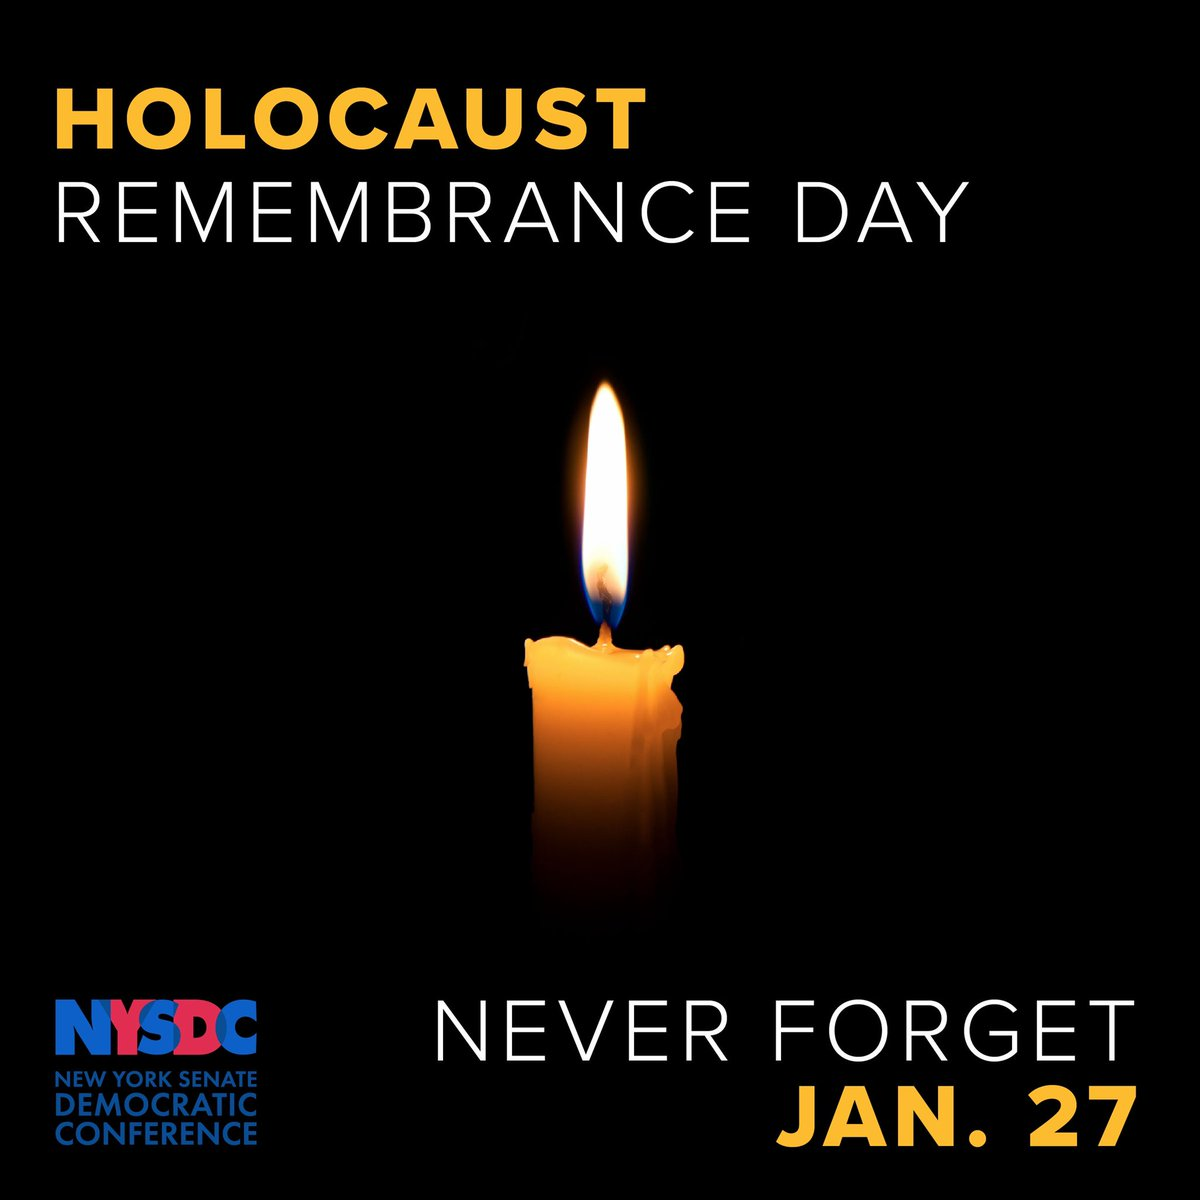 On #HolocaustRemembranceDay  we pay tribute to the millions of lives that were lost & honor the survivors.   May the tragic history be lessons for the present & future as we stand up against bigotry, discrimination, hate, & violence when we see it & build a peaceful & just world.